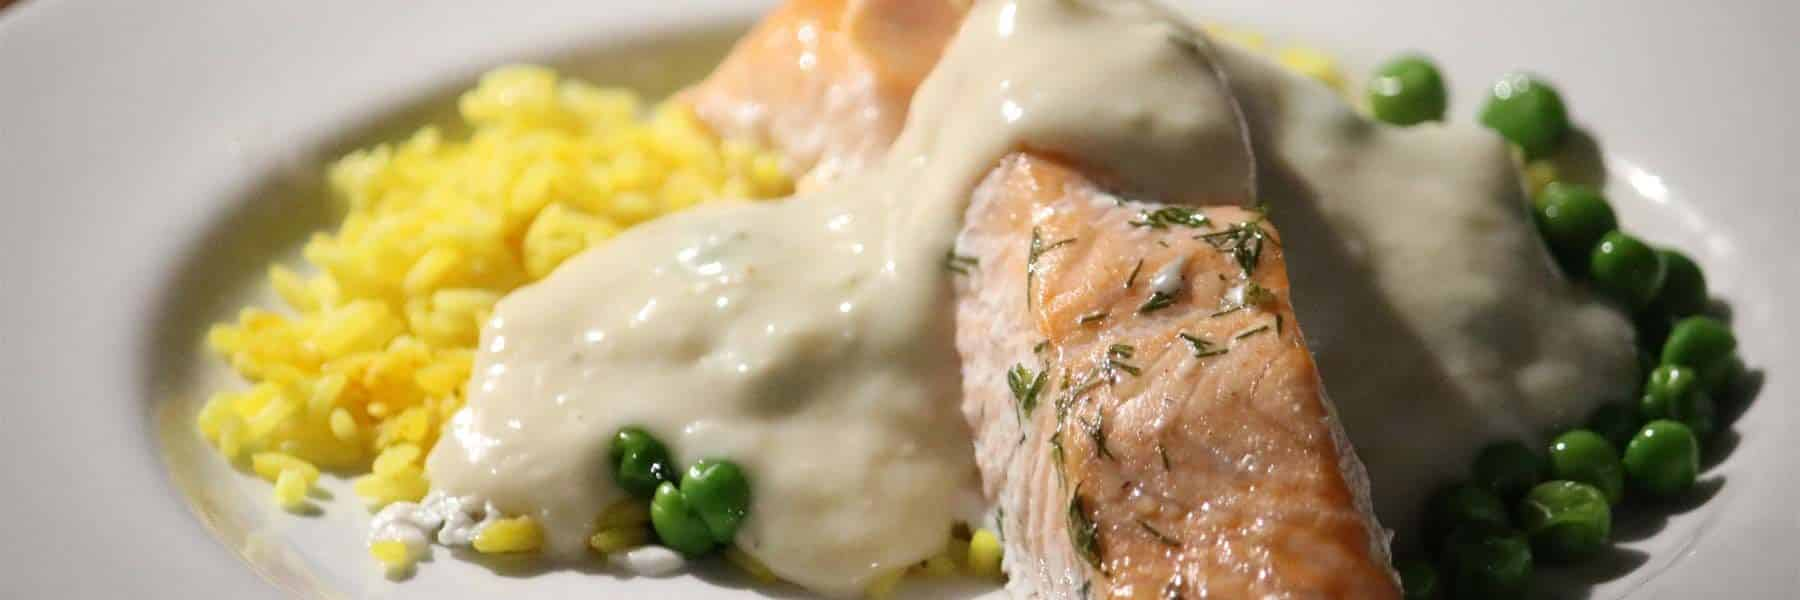 Seared Fillet of Salmon with Peas, Saffron Rice & Dill Velouté